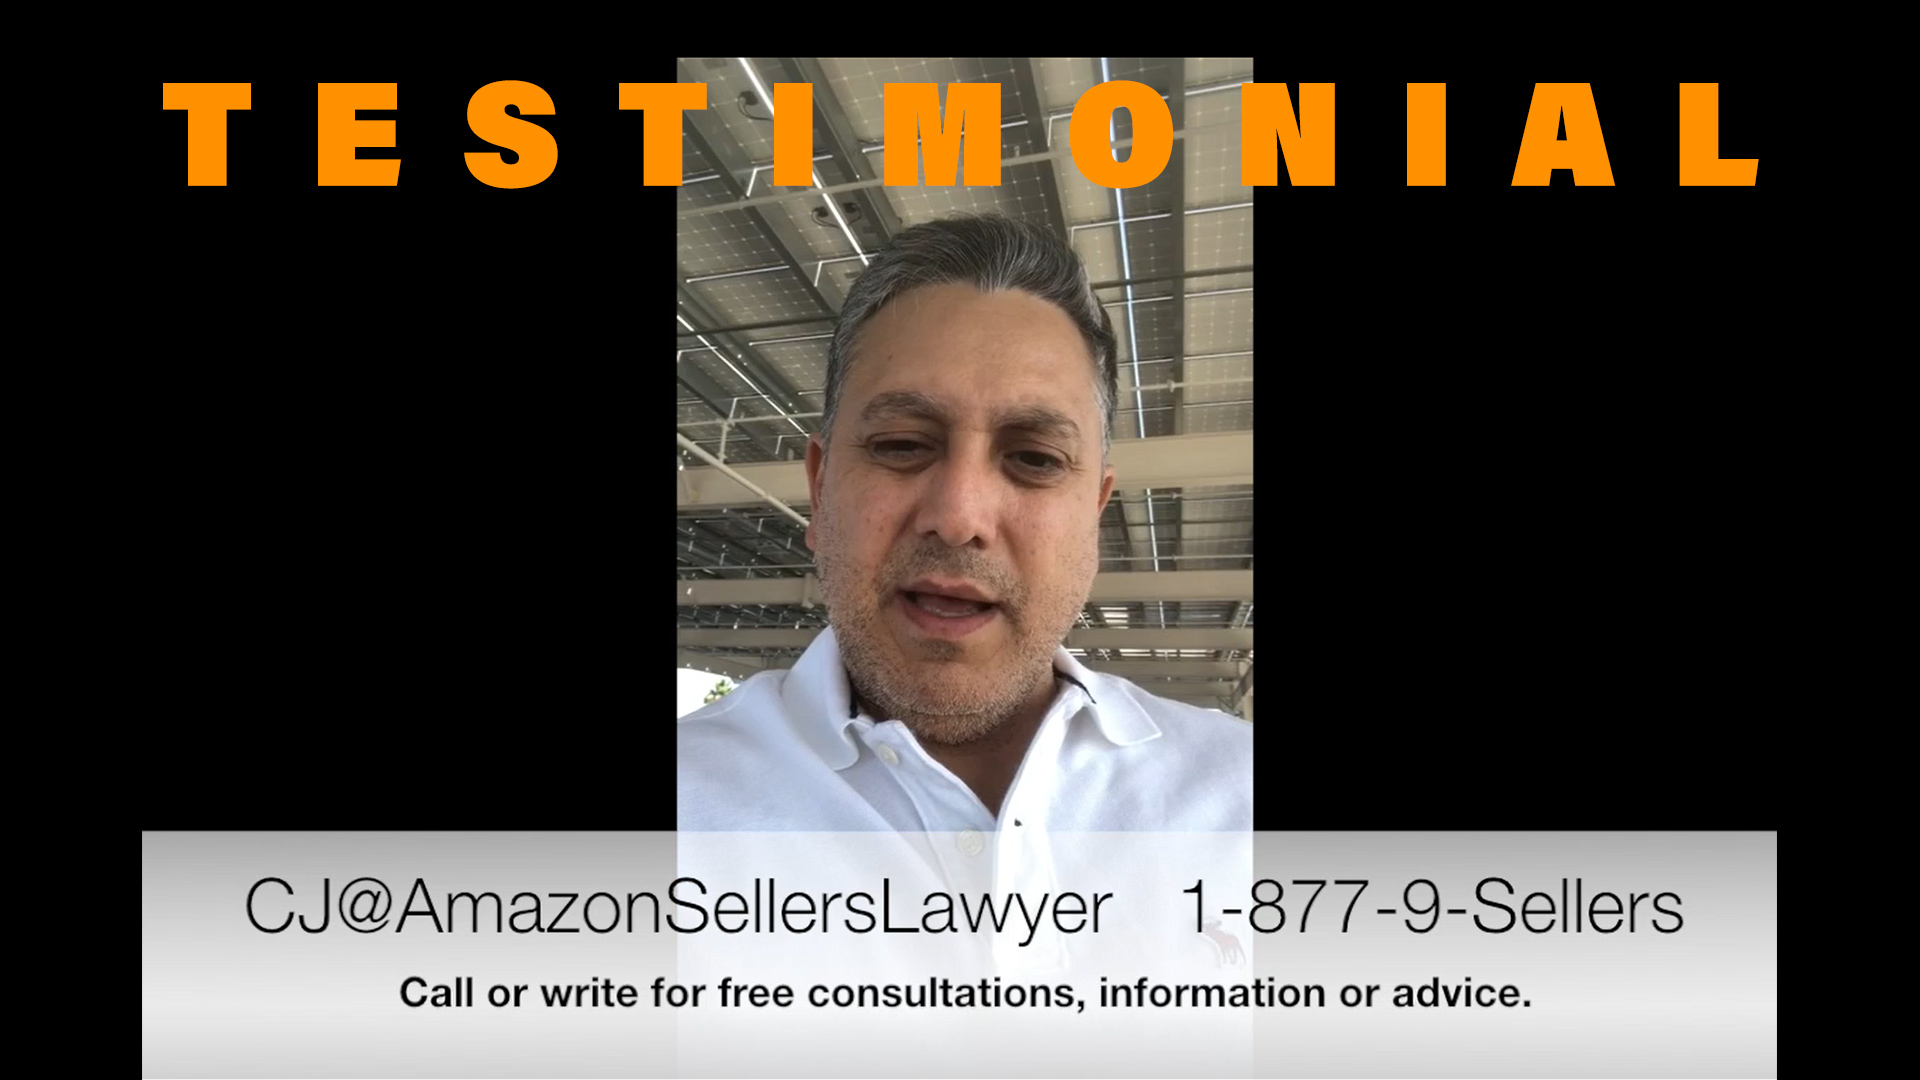 Law firm available 24 hours 7 days a week